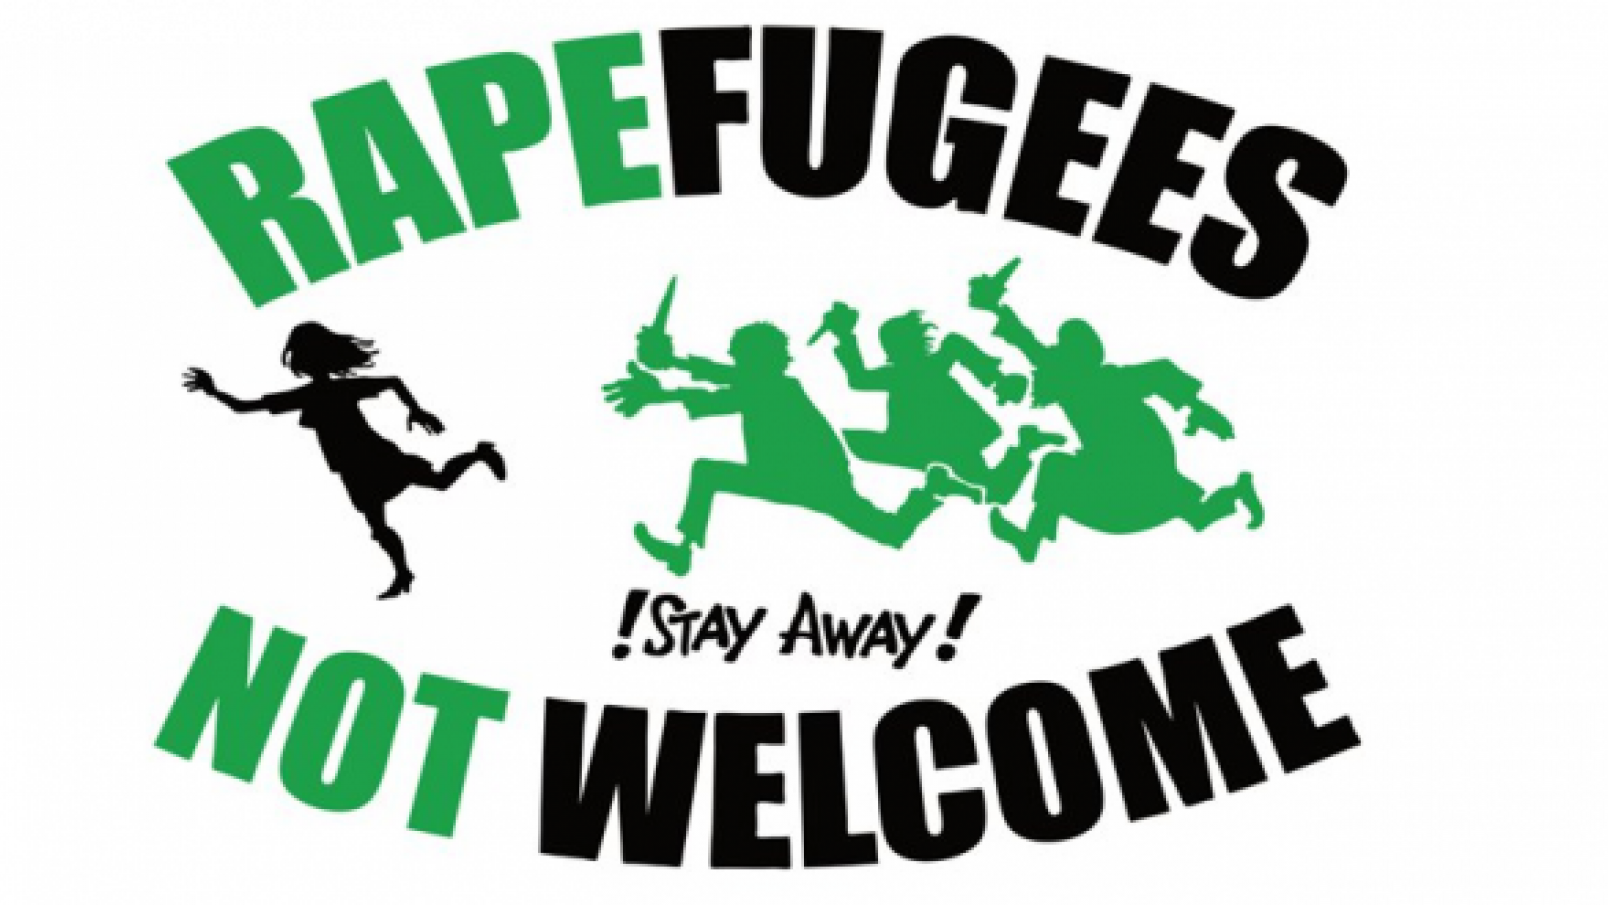 rapefugees-not-welcome-background-660x330